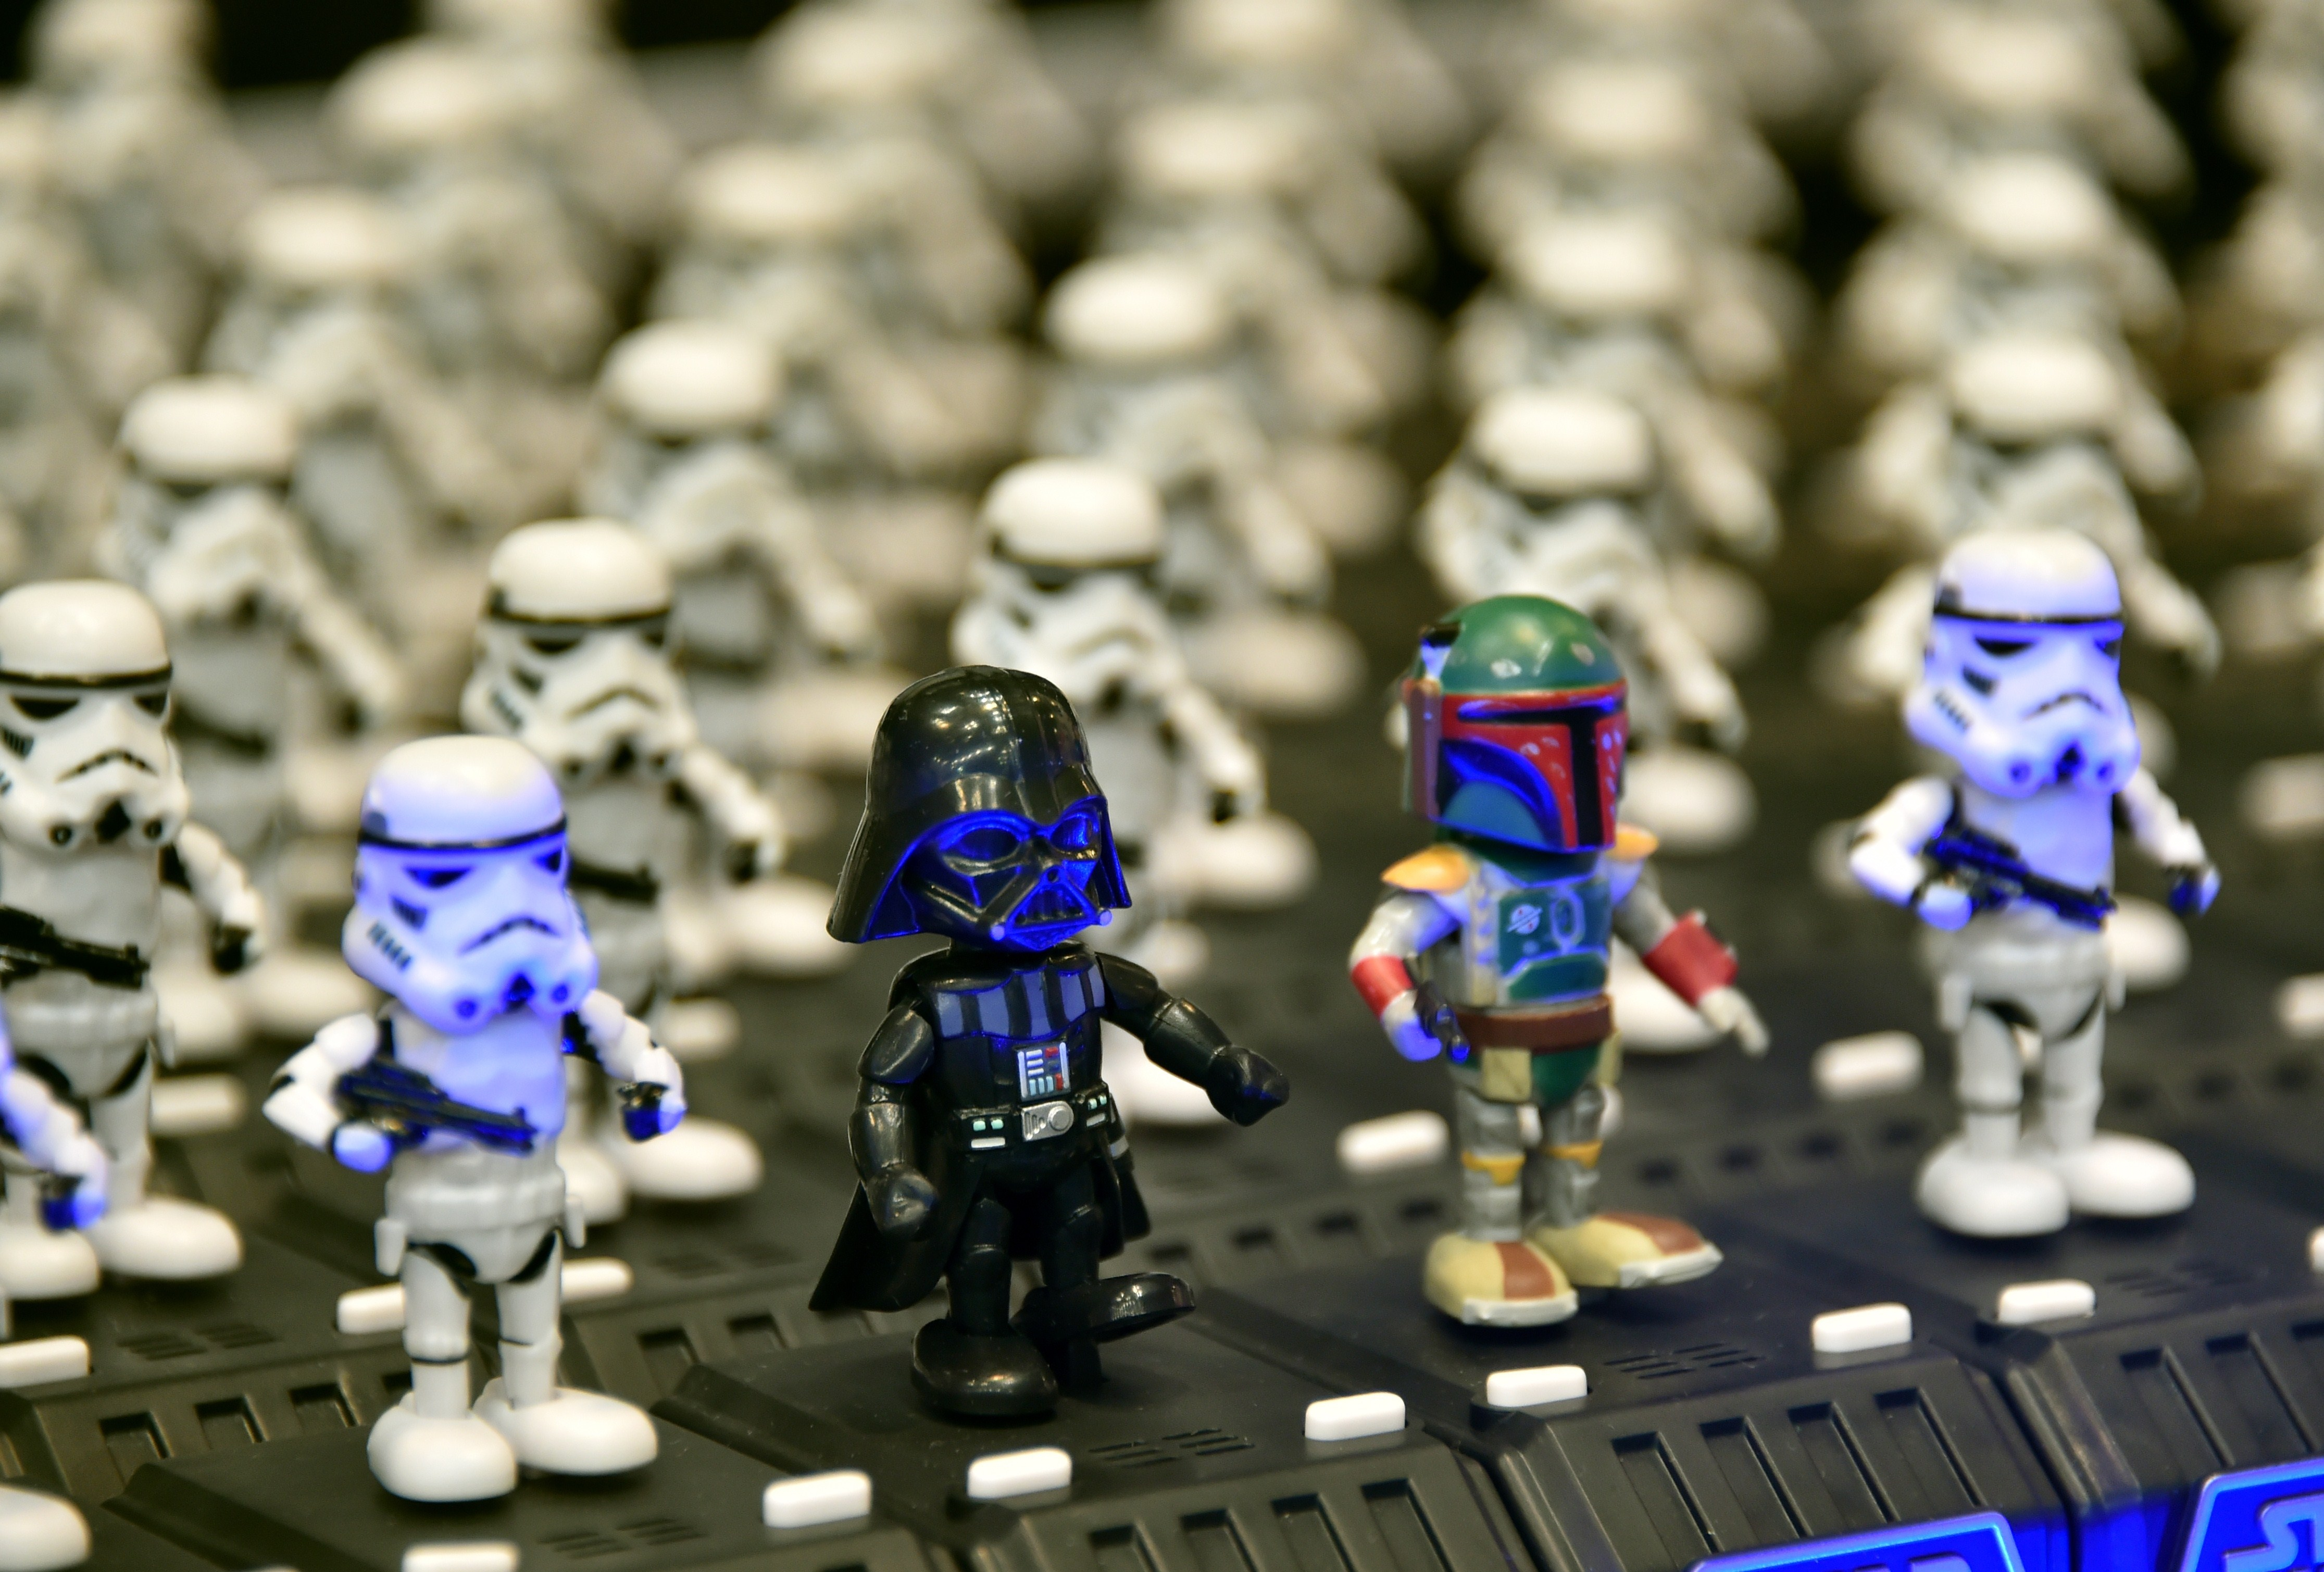 """Dancing figurine toy characters of """"Star Wars Space Opera"""", produced by Japanese toy maker Tomy are displayed at the annual Tokyo Toy Show in Tokyo on June 18, 2015. Disney will be launching the new line of Star Wars toys in a global toy unboxing event on September 4."""